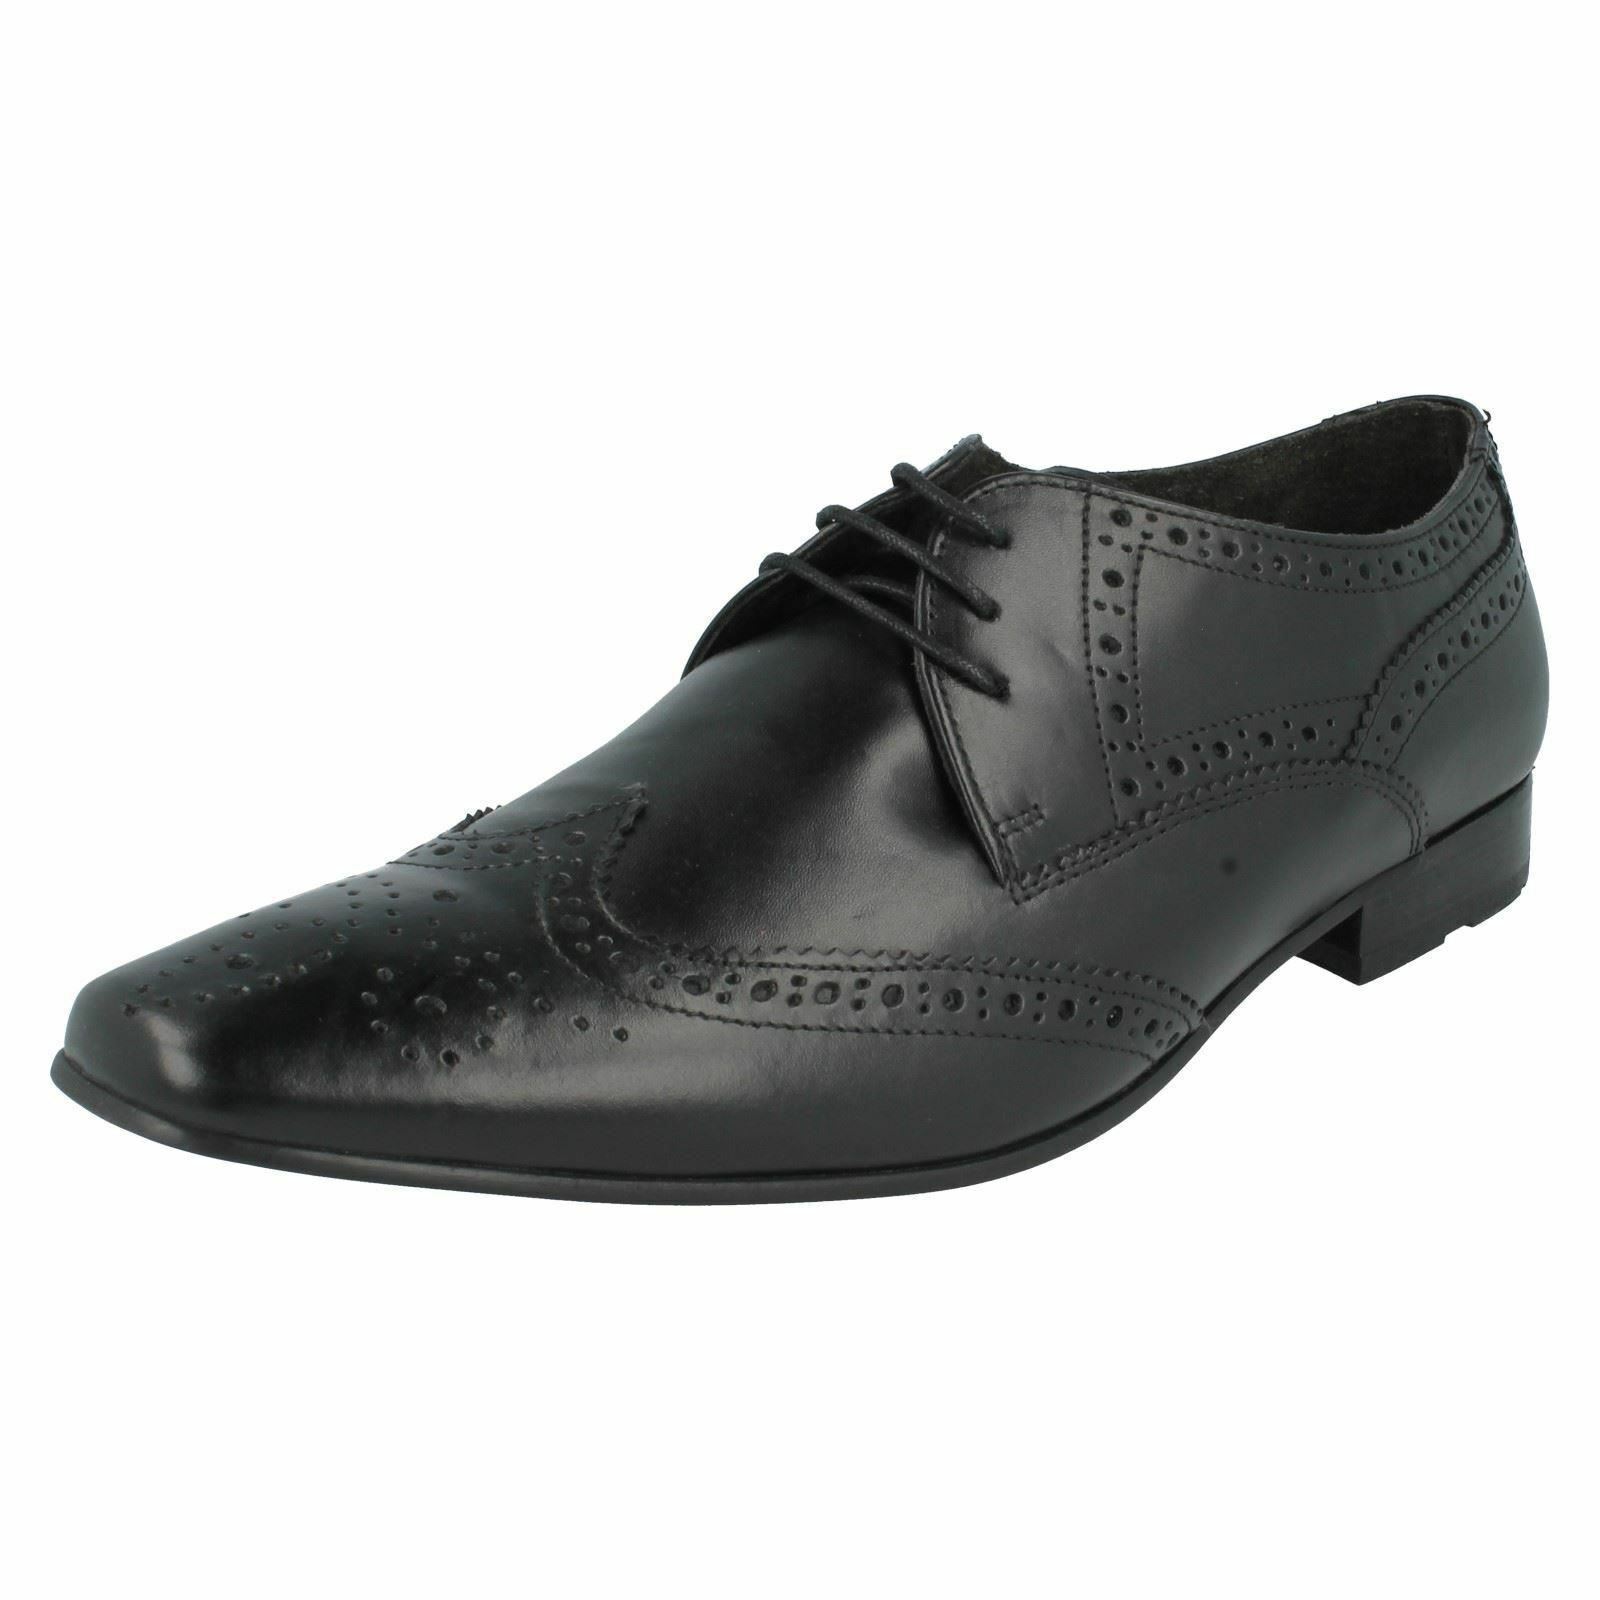 SALE Base London Wingtip 'Charles' Gents Black Leather Full Brogue Wingtip London Oxford Shoes a279a4